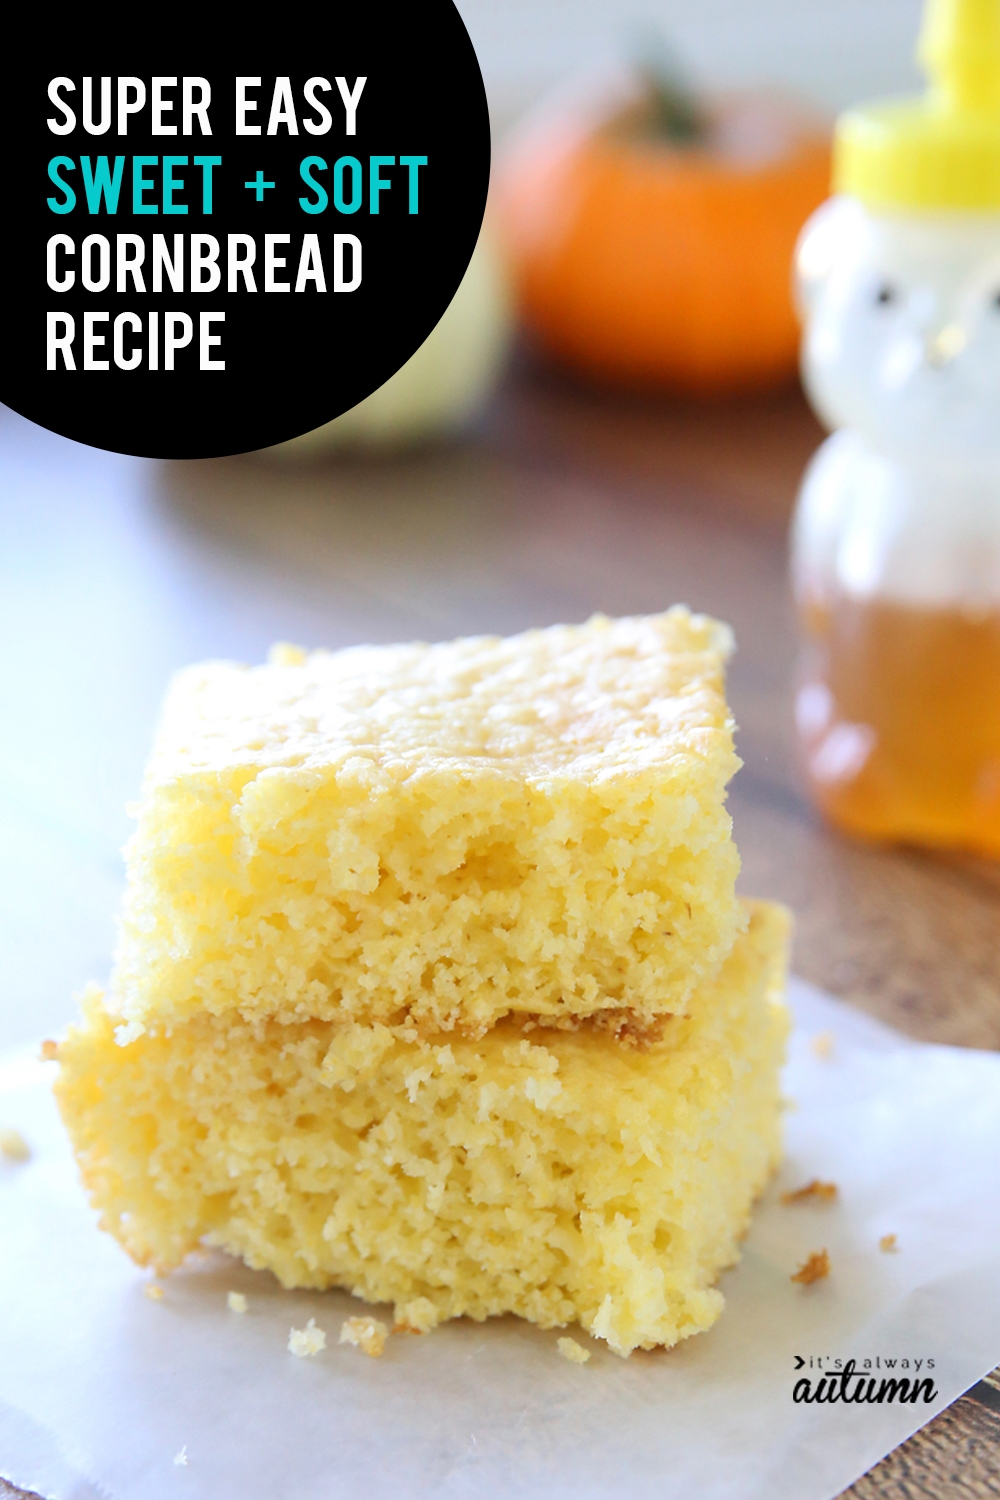 You've got to try this Jiffy cornbread mix hack for sweet, soft cornbread! Easy Jiffy cornbread recipe.